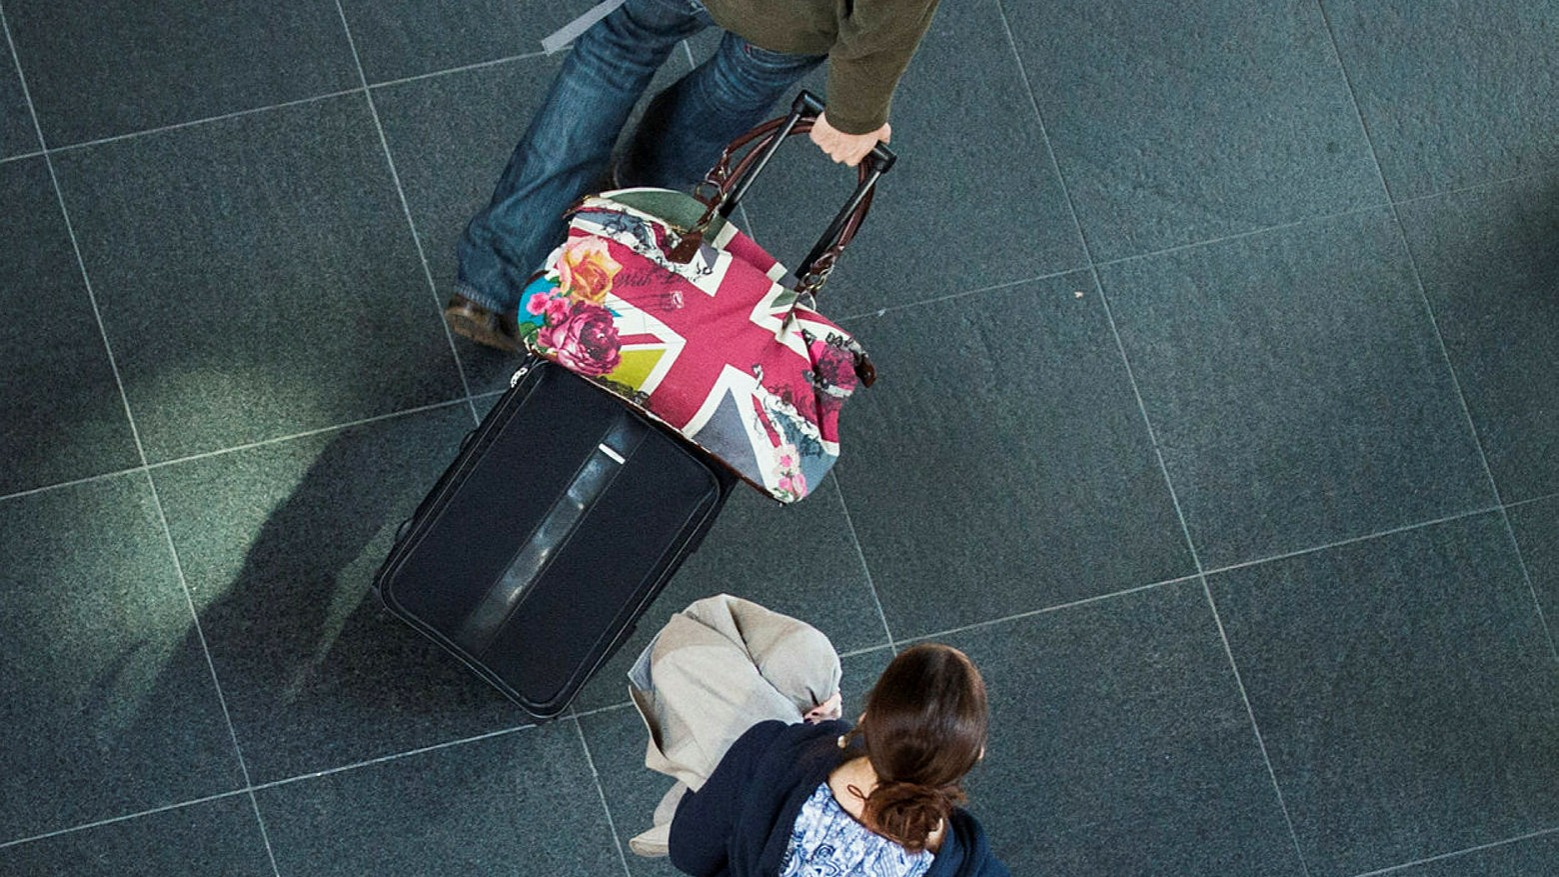 Two people with bags, British flag, viewed from above